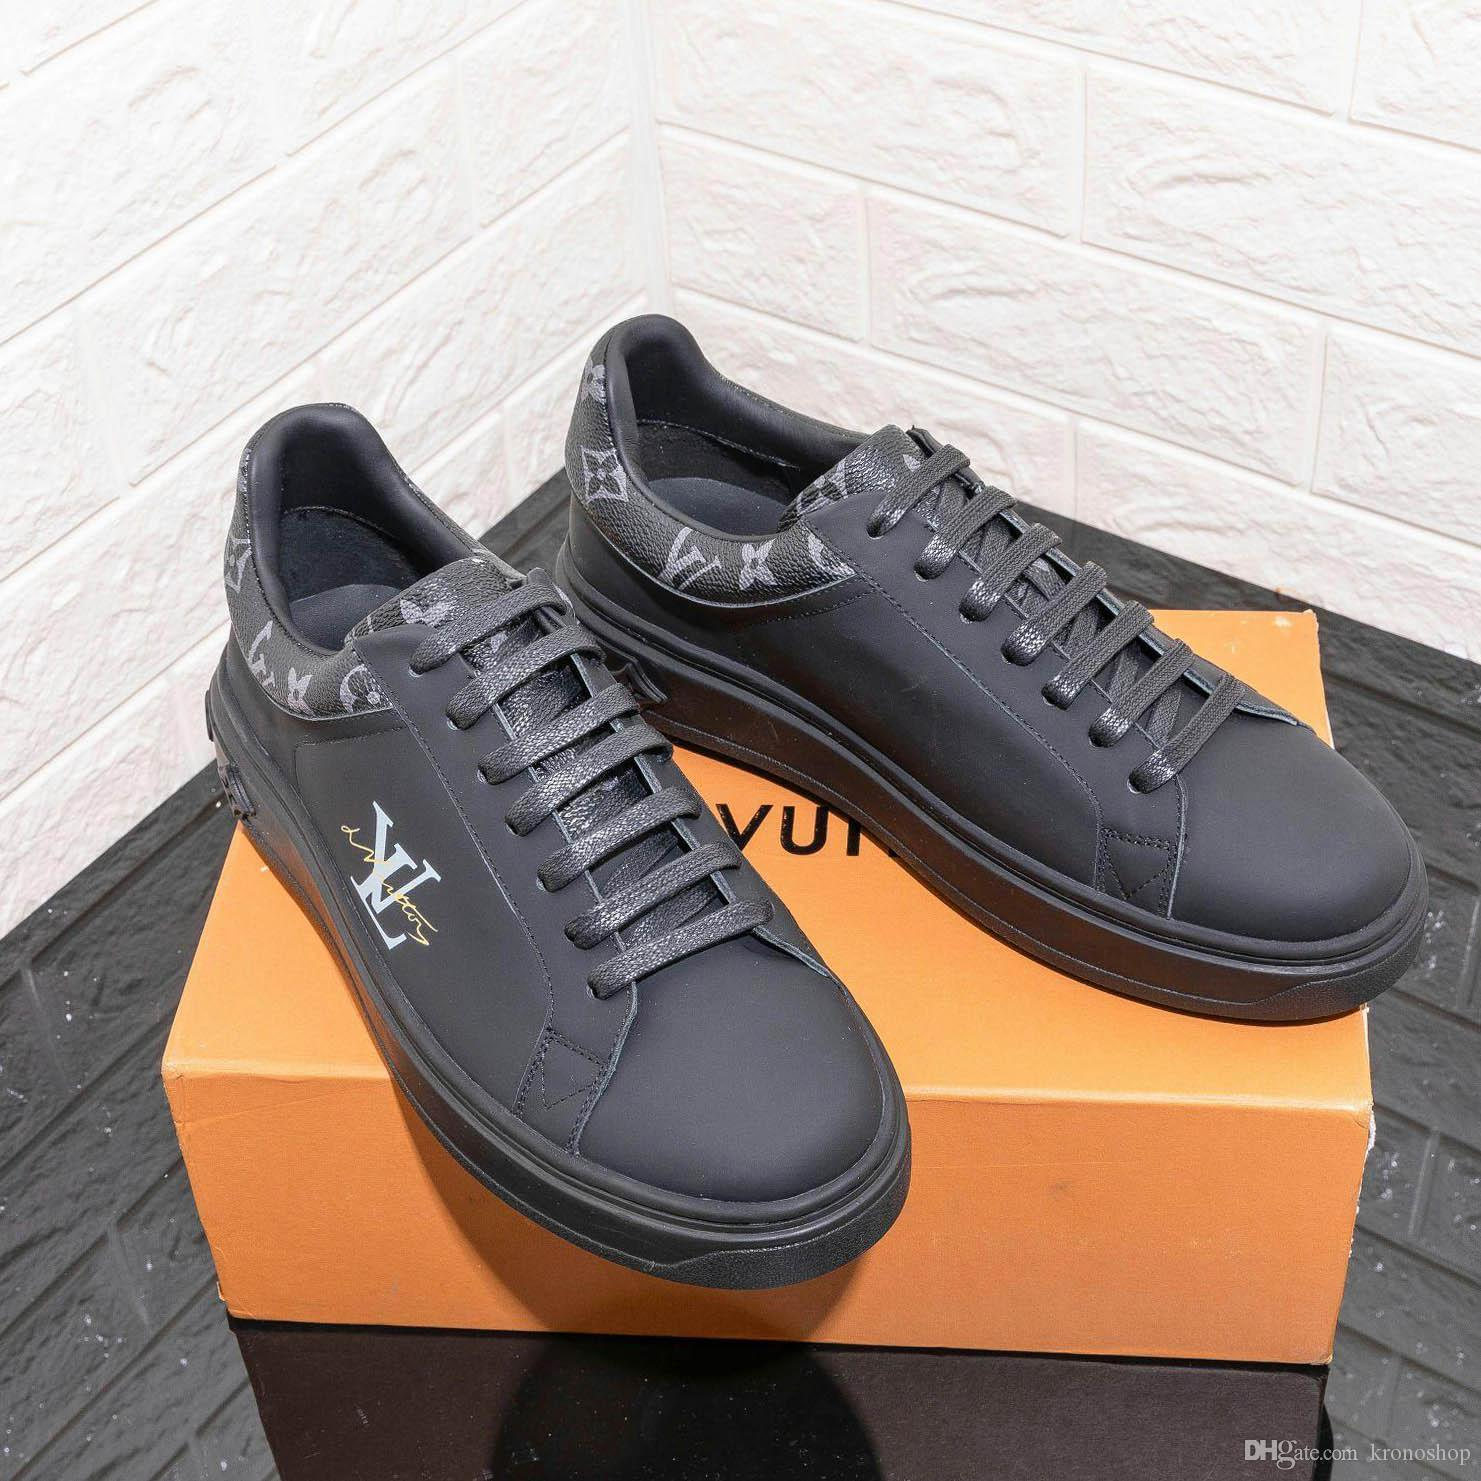 New listing personality wild Mens casual shoes,Top quality Breathable Casual Shoes Printed pattern Mens Casual Sport shoes Size 38-45 0012